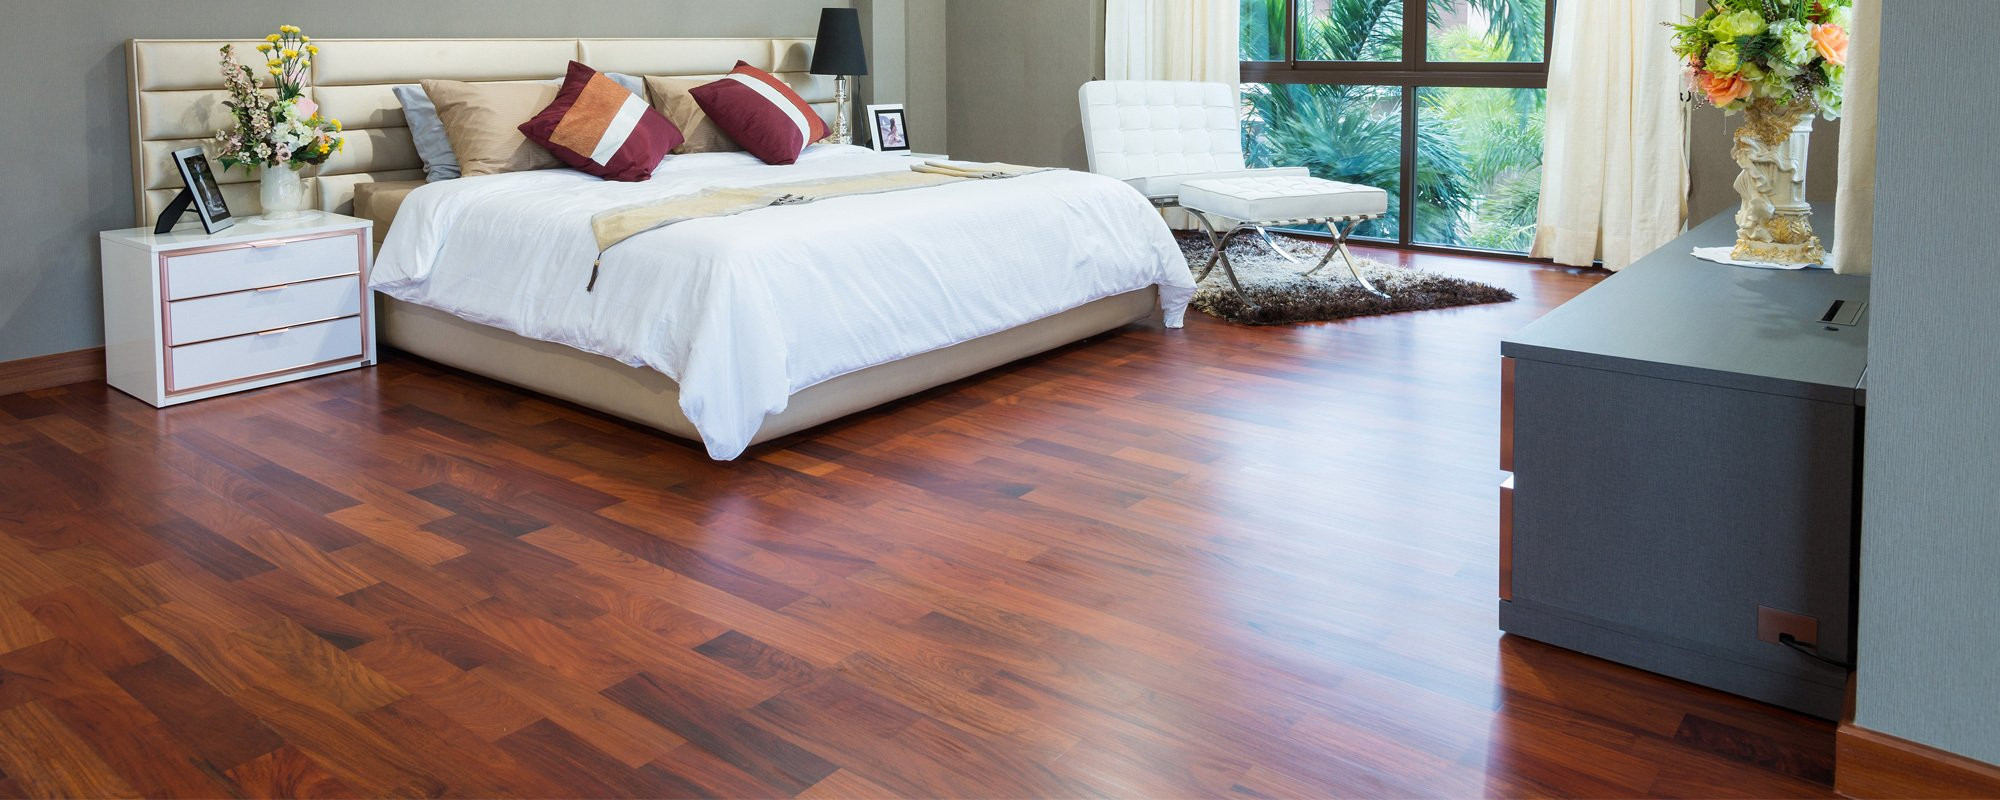 View of the wooden flooring